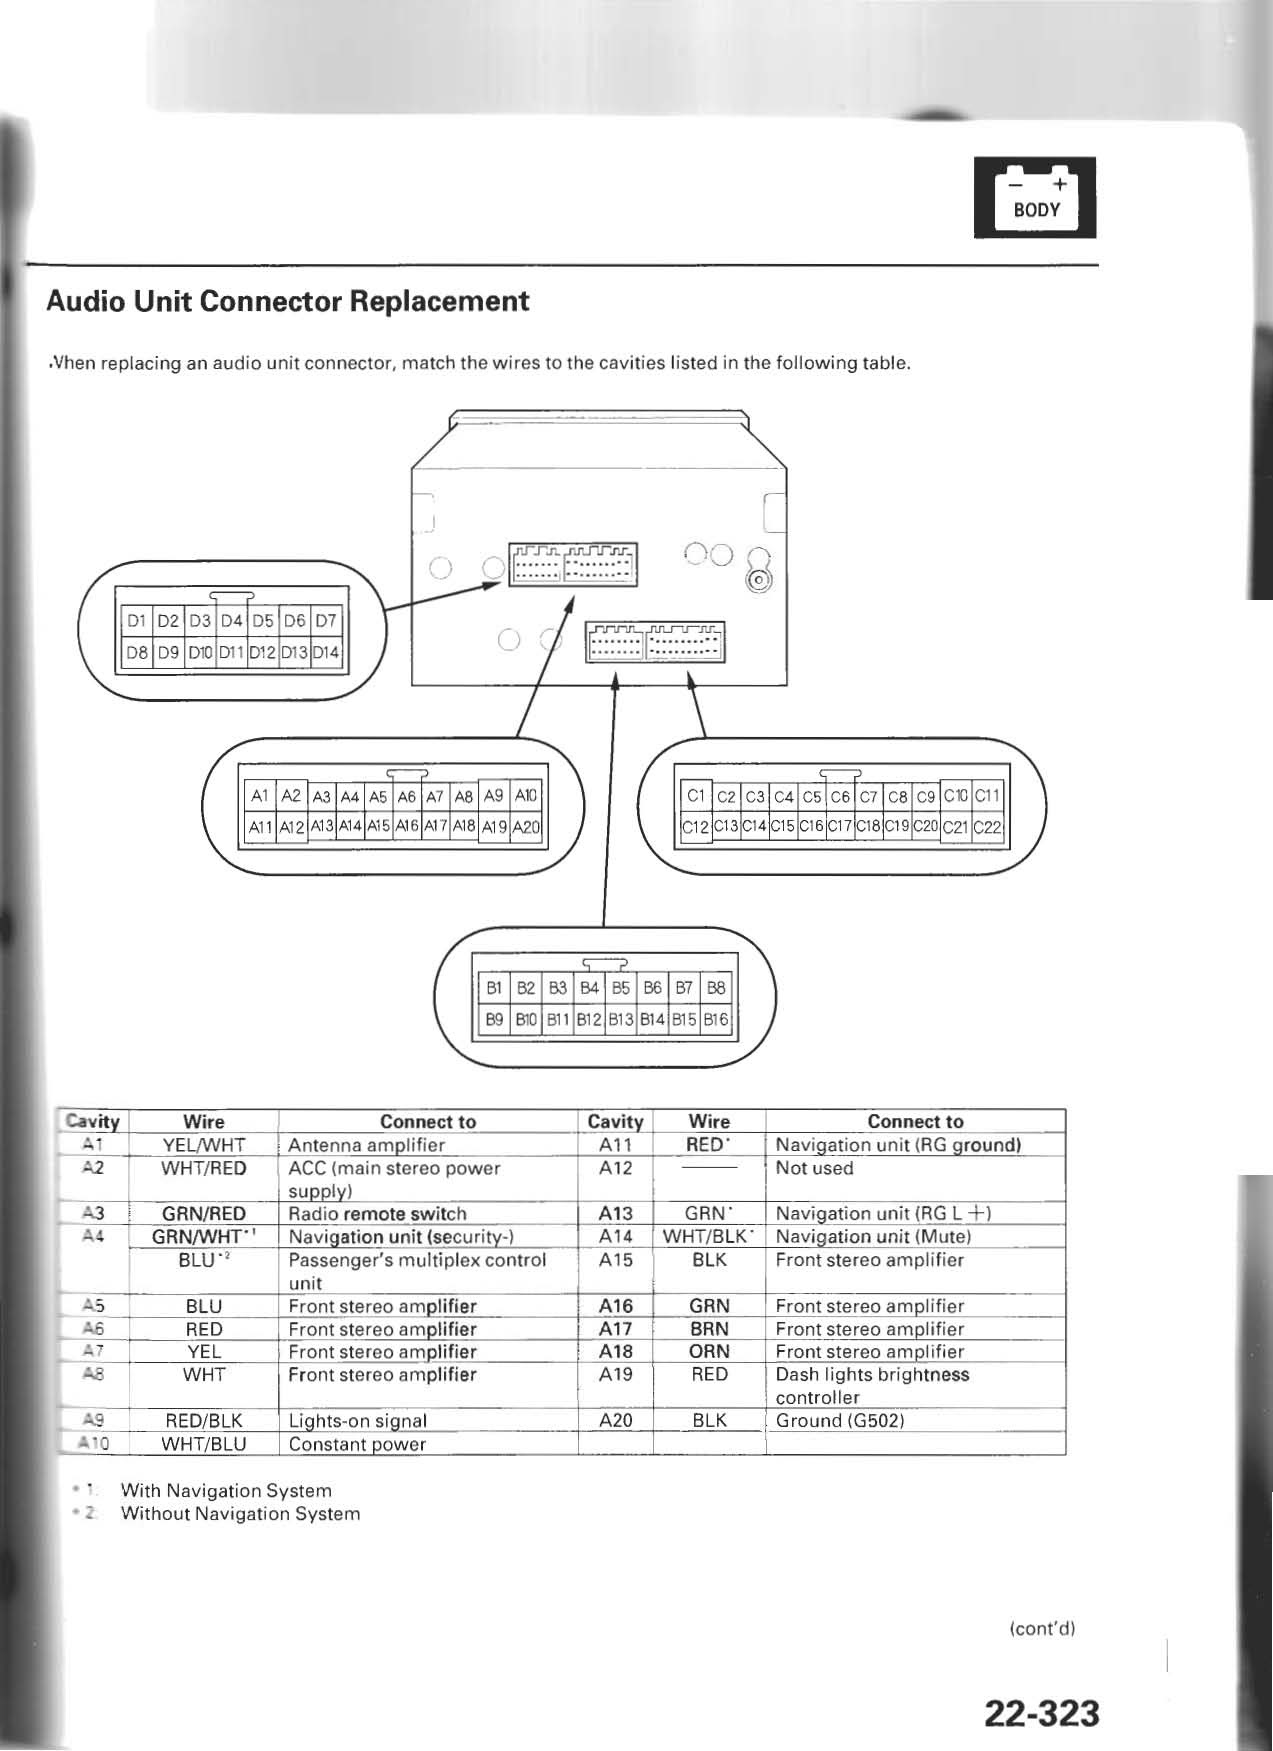 acura tl stereo wiring diagram 8 pin trailer 2001 mdx hp photosmart printer